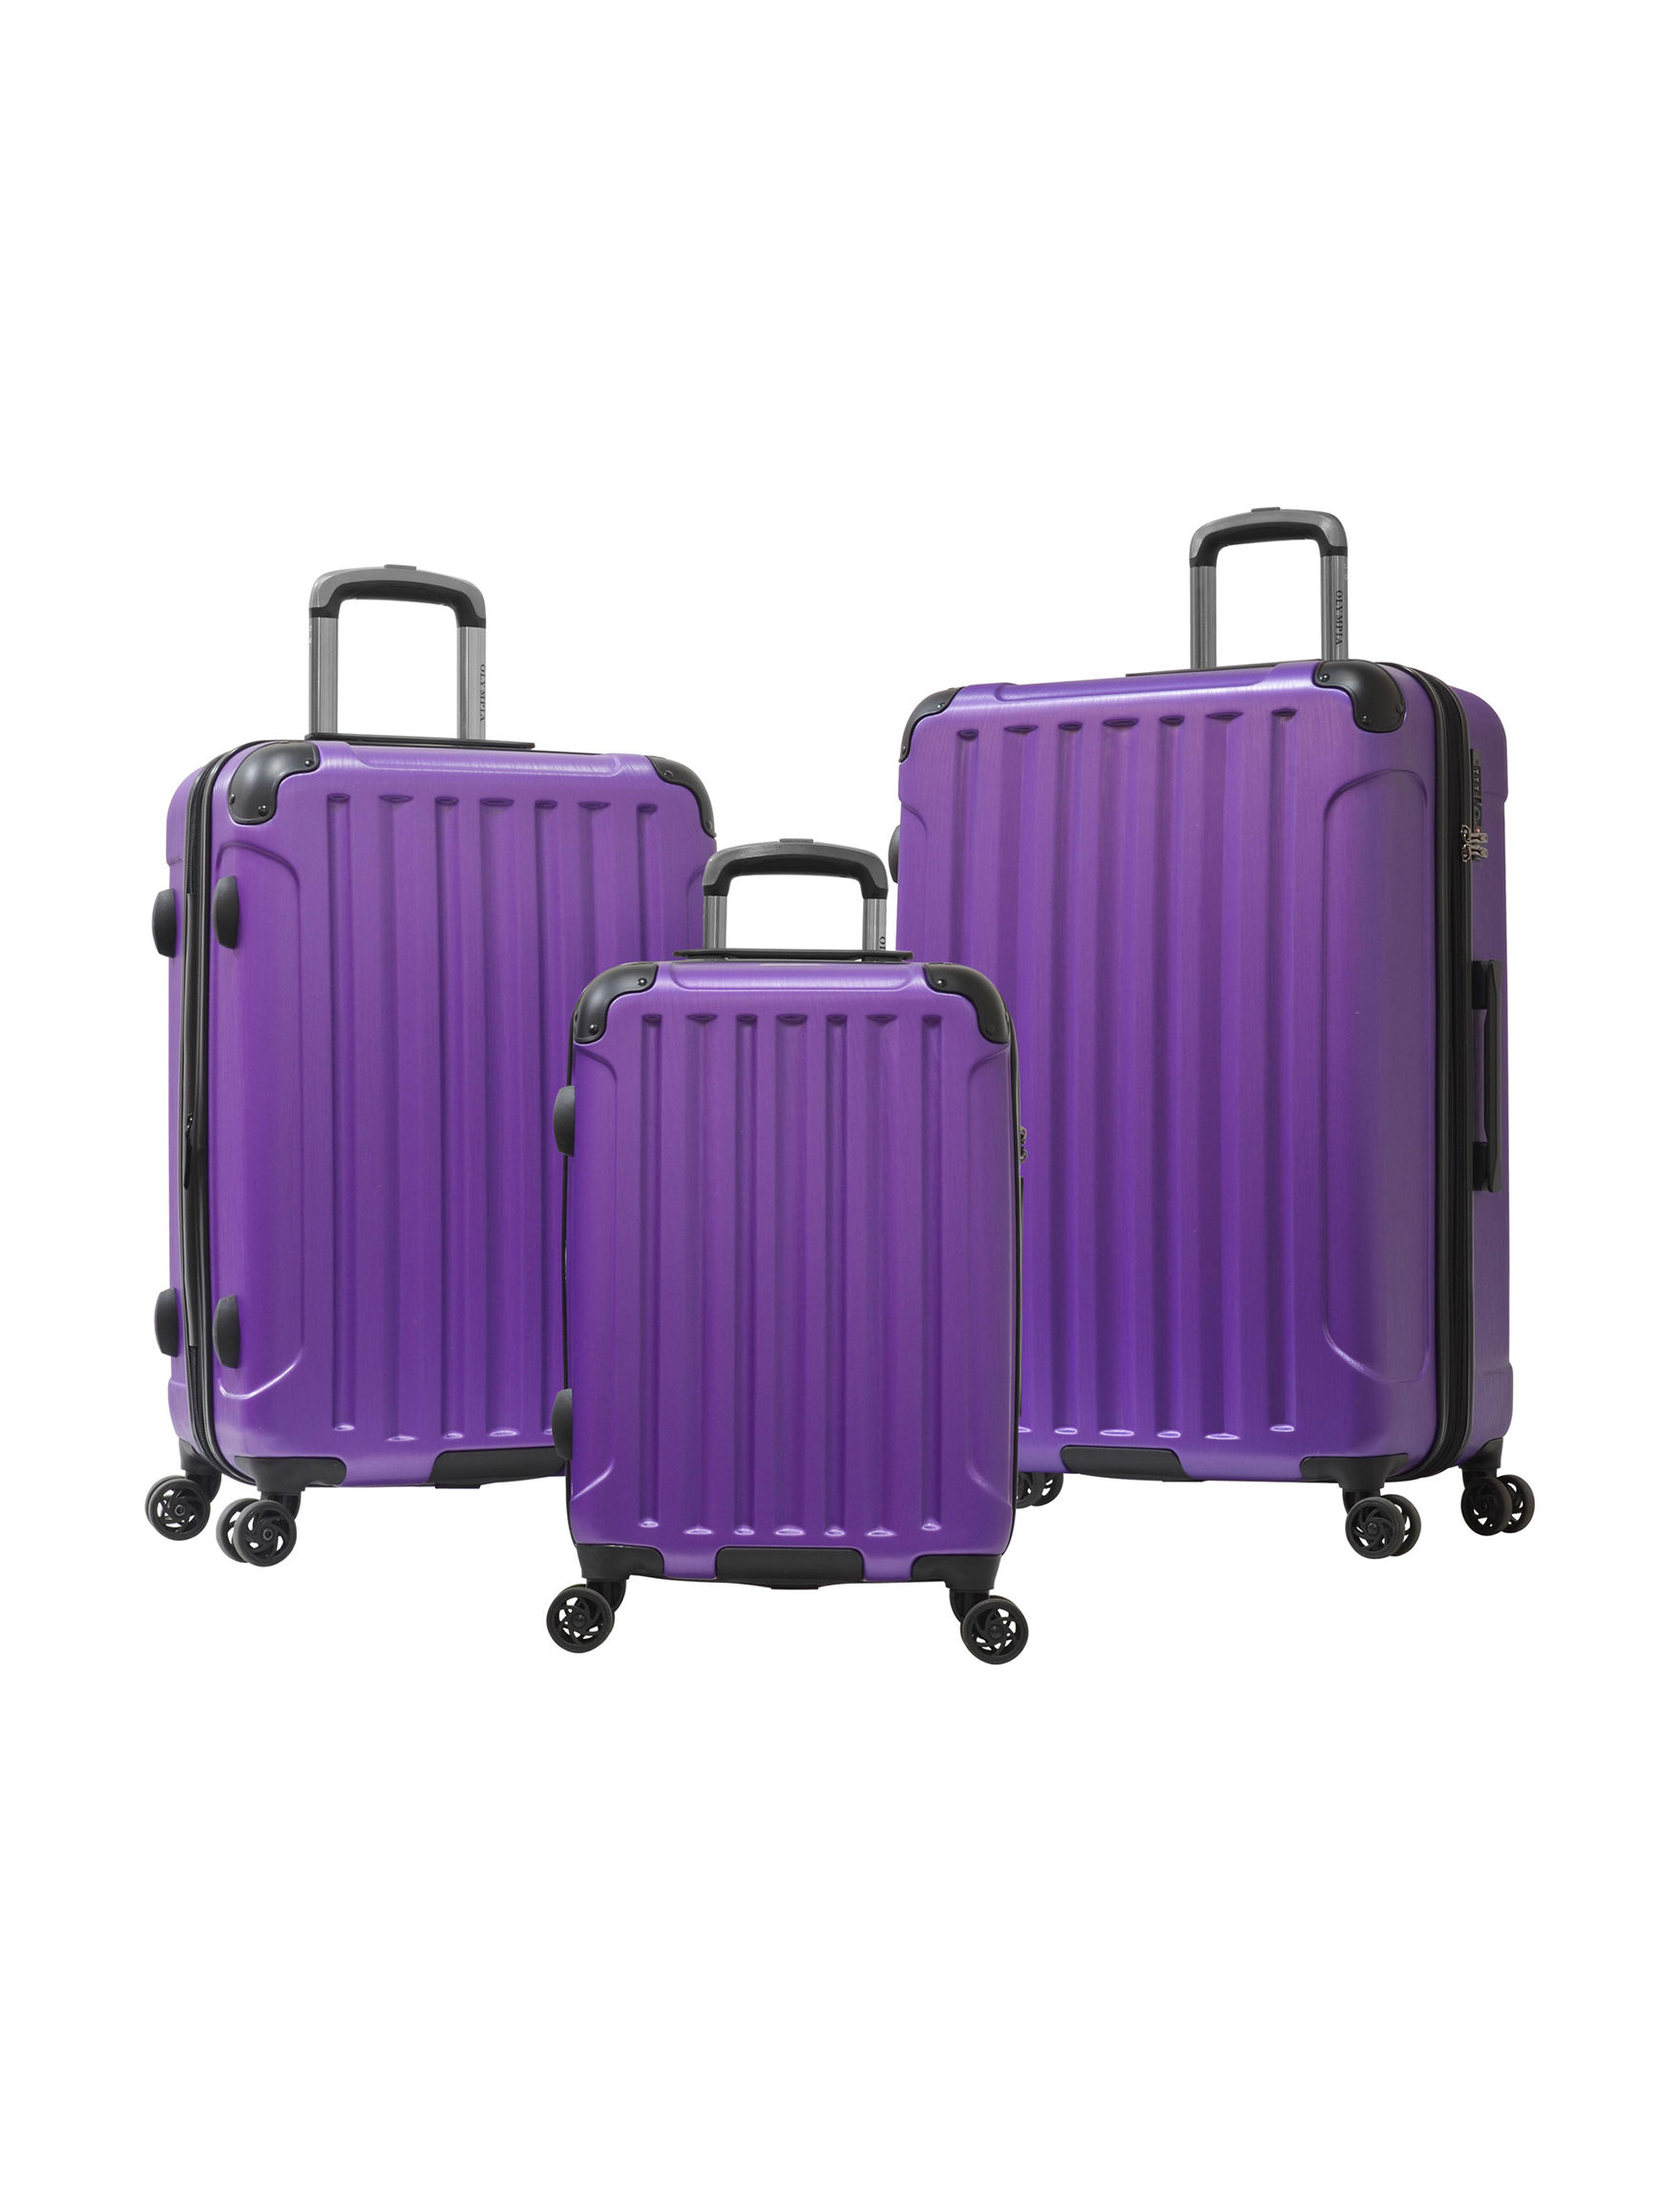 Olympia USA Purple Luggage Sets